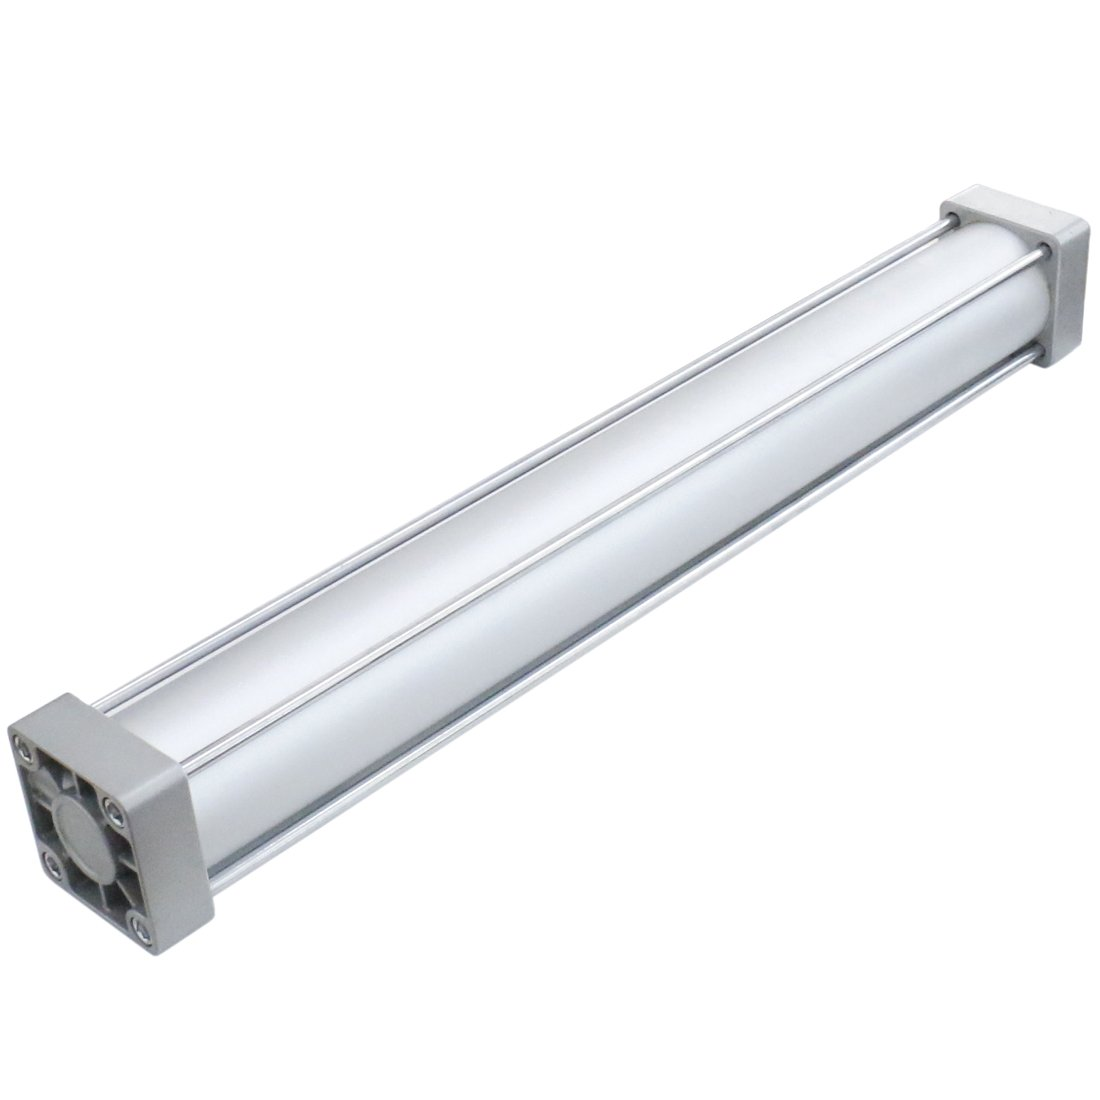 Baomain Pneumatic Air Cylinder SC 50 x 500 PT 1/4, Bore: 50mm(2 inch), Stroke: 500 mm (20 inch), Screwed Piston Rod Dual Action 1 Mpa